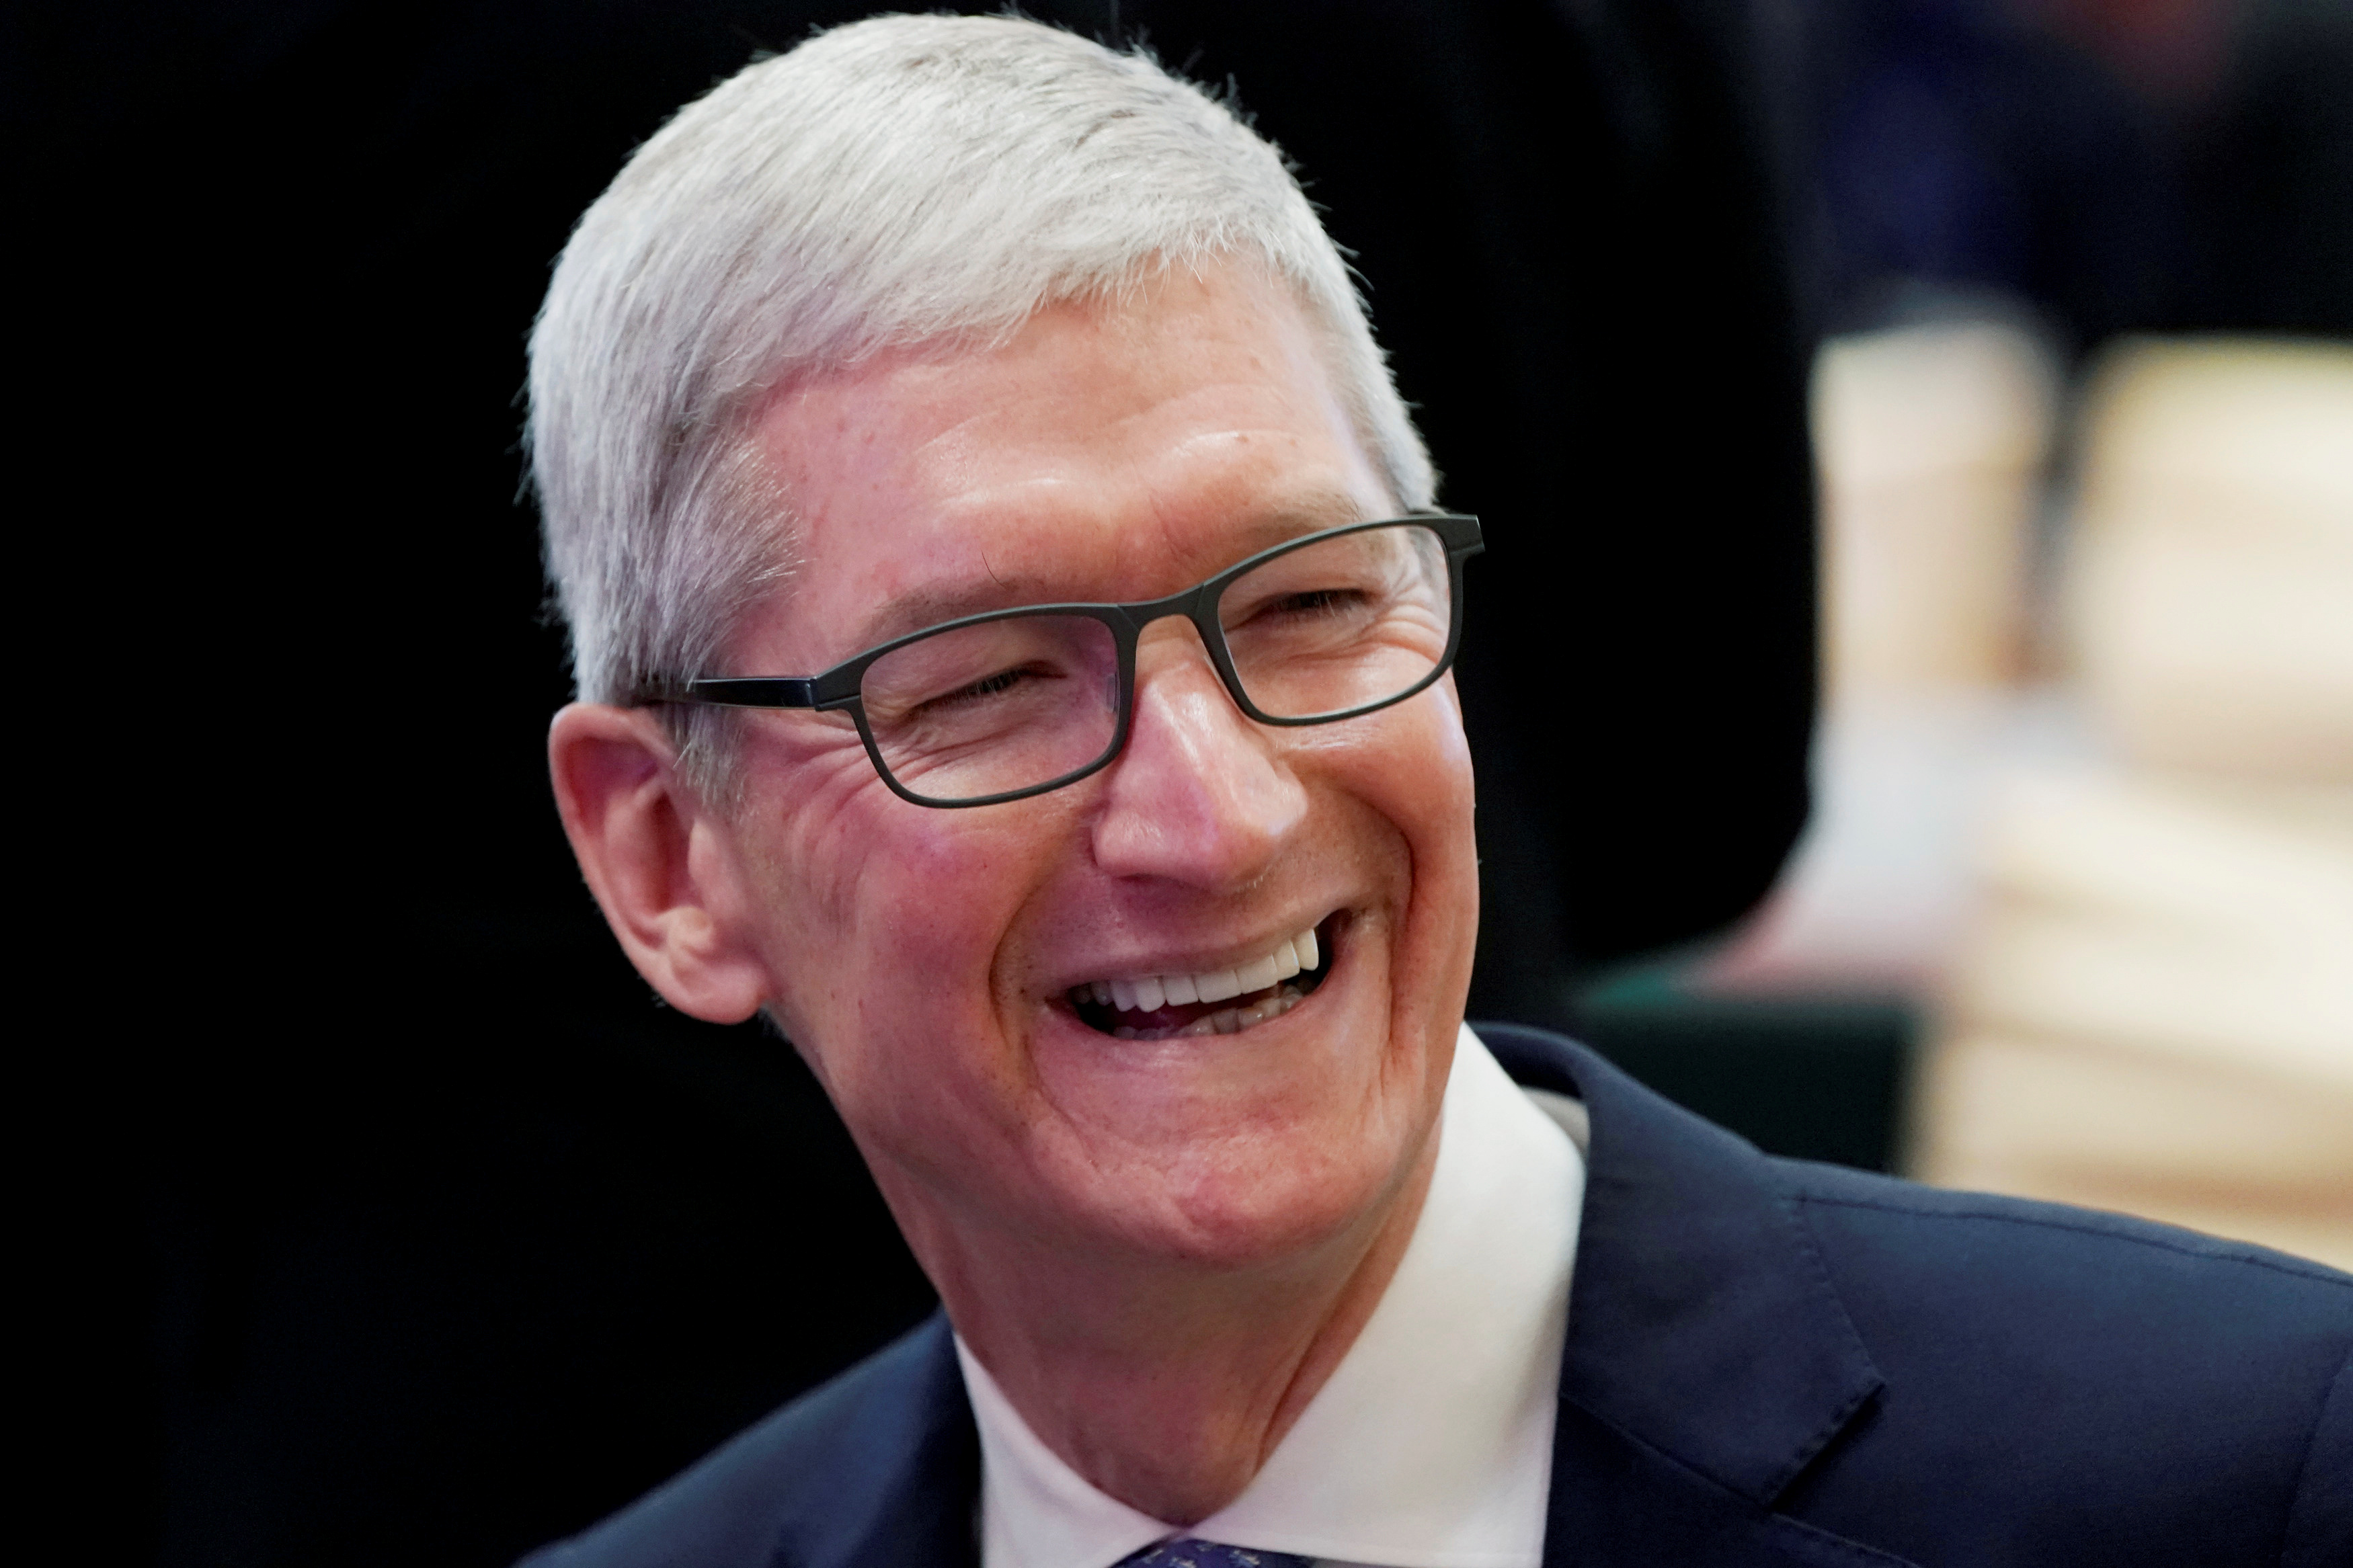 Apple CEO Tim Cook attends the annual session of China Development Forum (CDF) 2018 at the Diaoyutai State Guesthouse in Beijing, China March 24, 2018. REUTERS/Jason Lee - RC1F7D1075E0